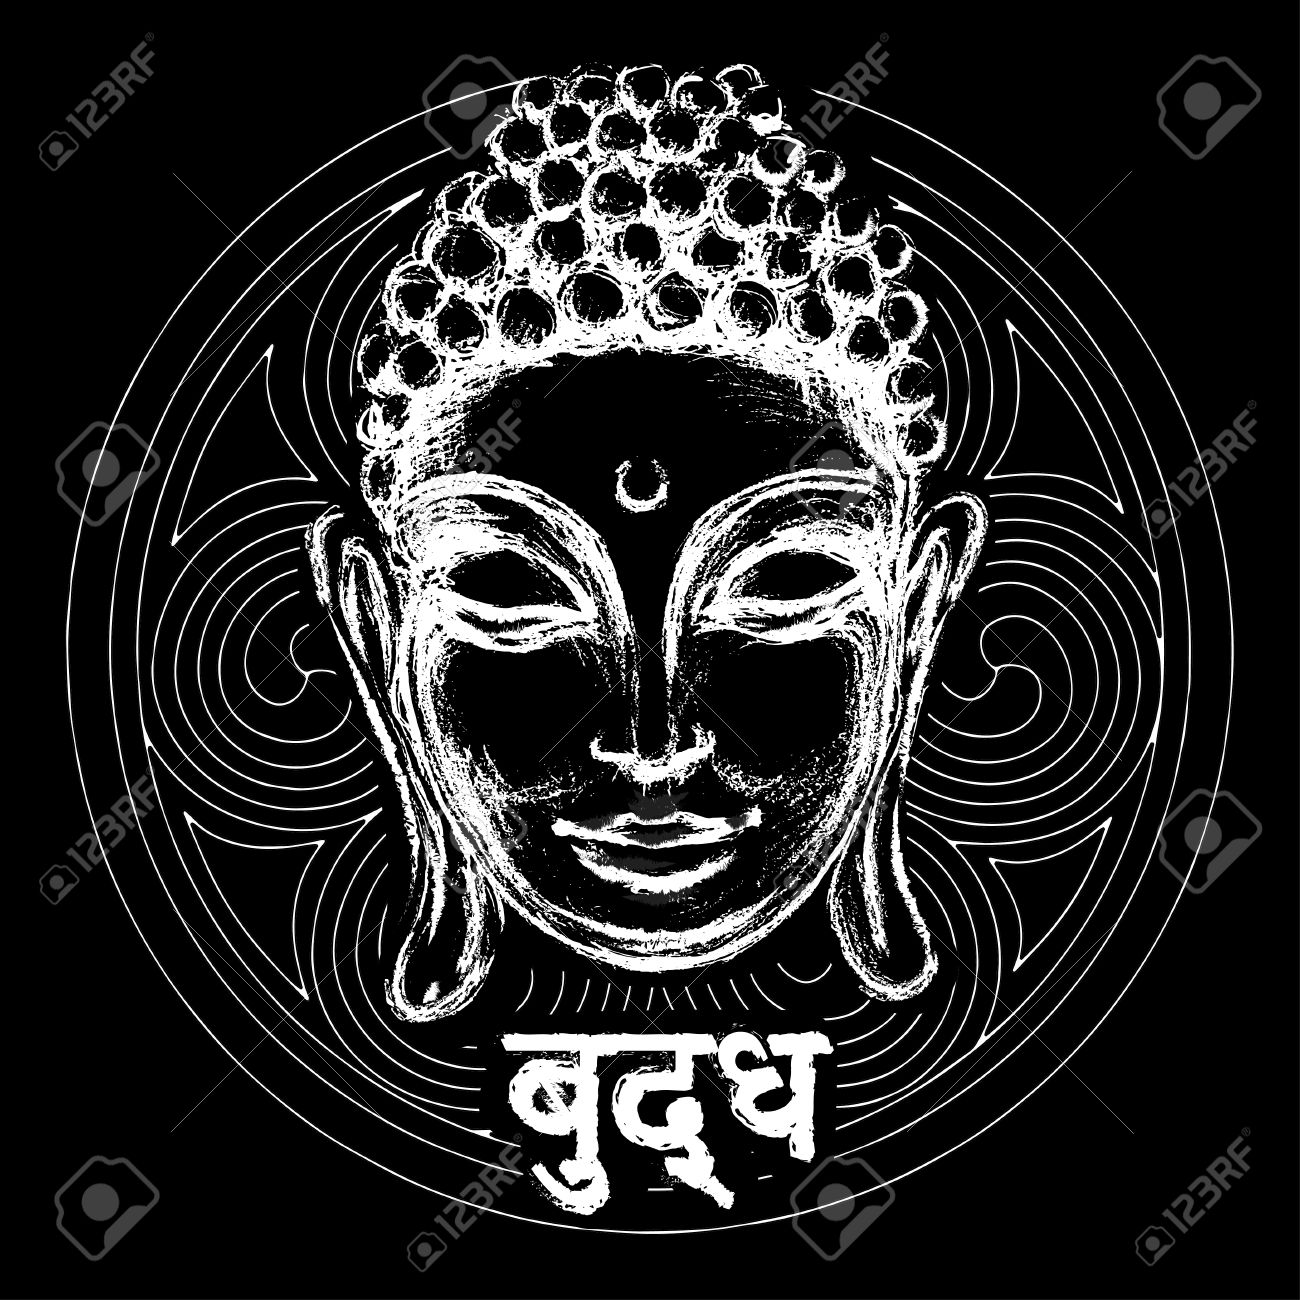 Sketch head smiling buddha in meditation and nirvana in a state of sketch head smiling buddha in meditation and nirvana in a state of zen banque d biocorpaavc Images